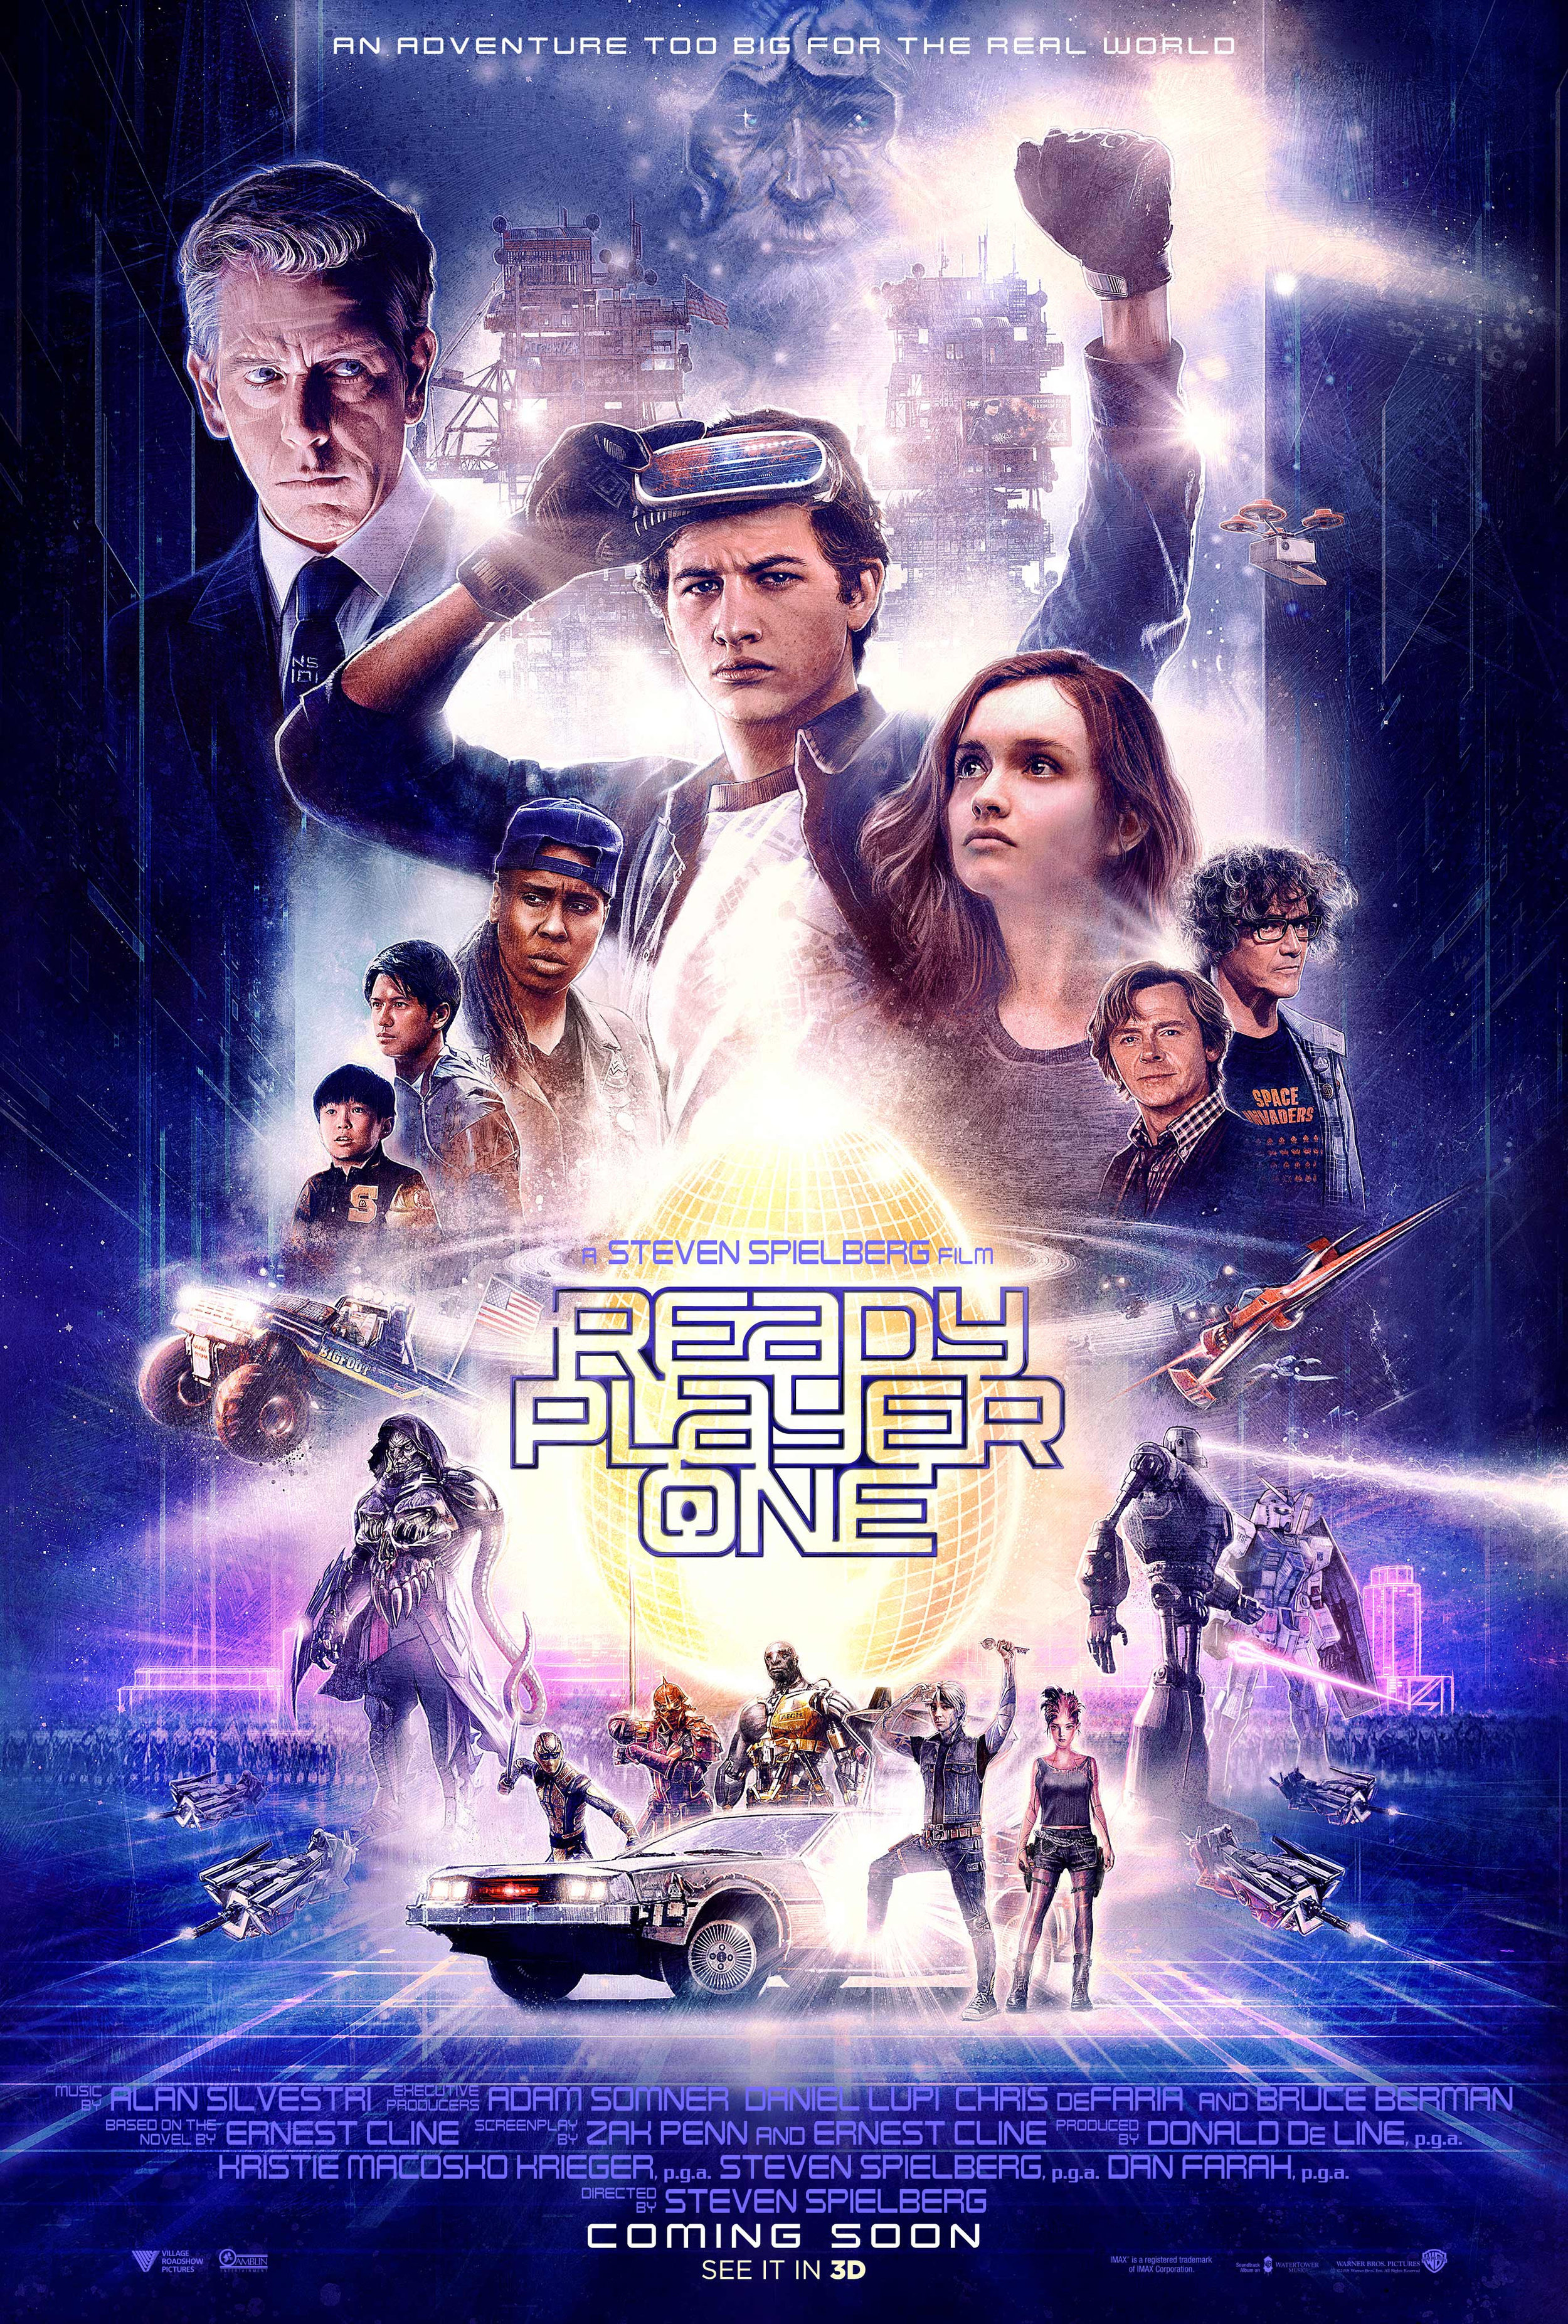 Ready player one official poster